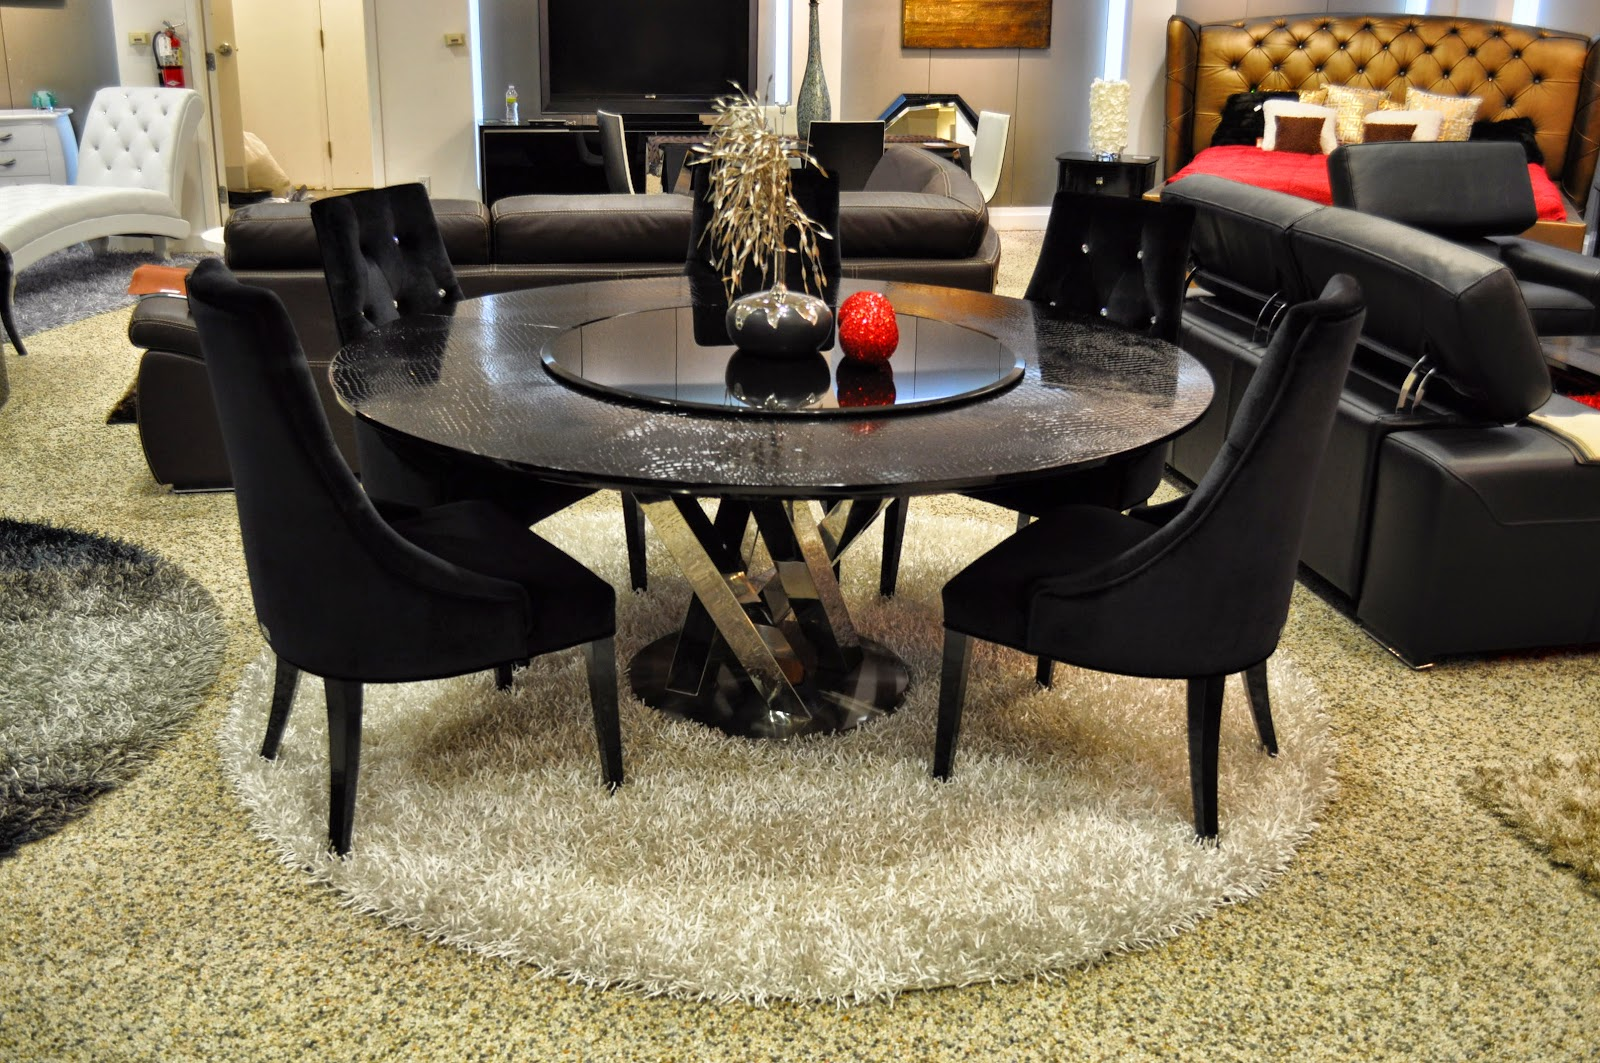 Black Dining Table & Queen Table: Black Dining Table